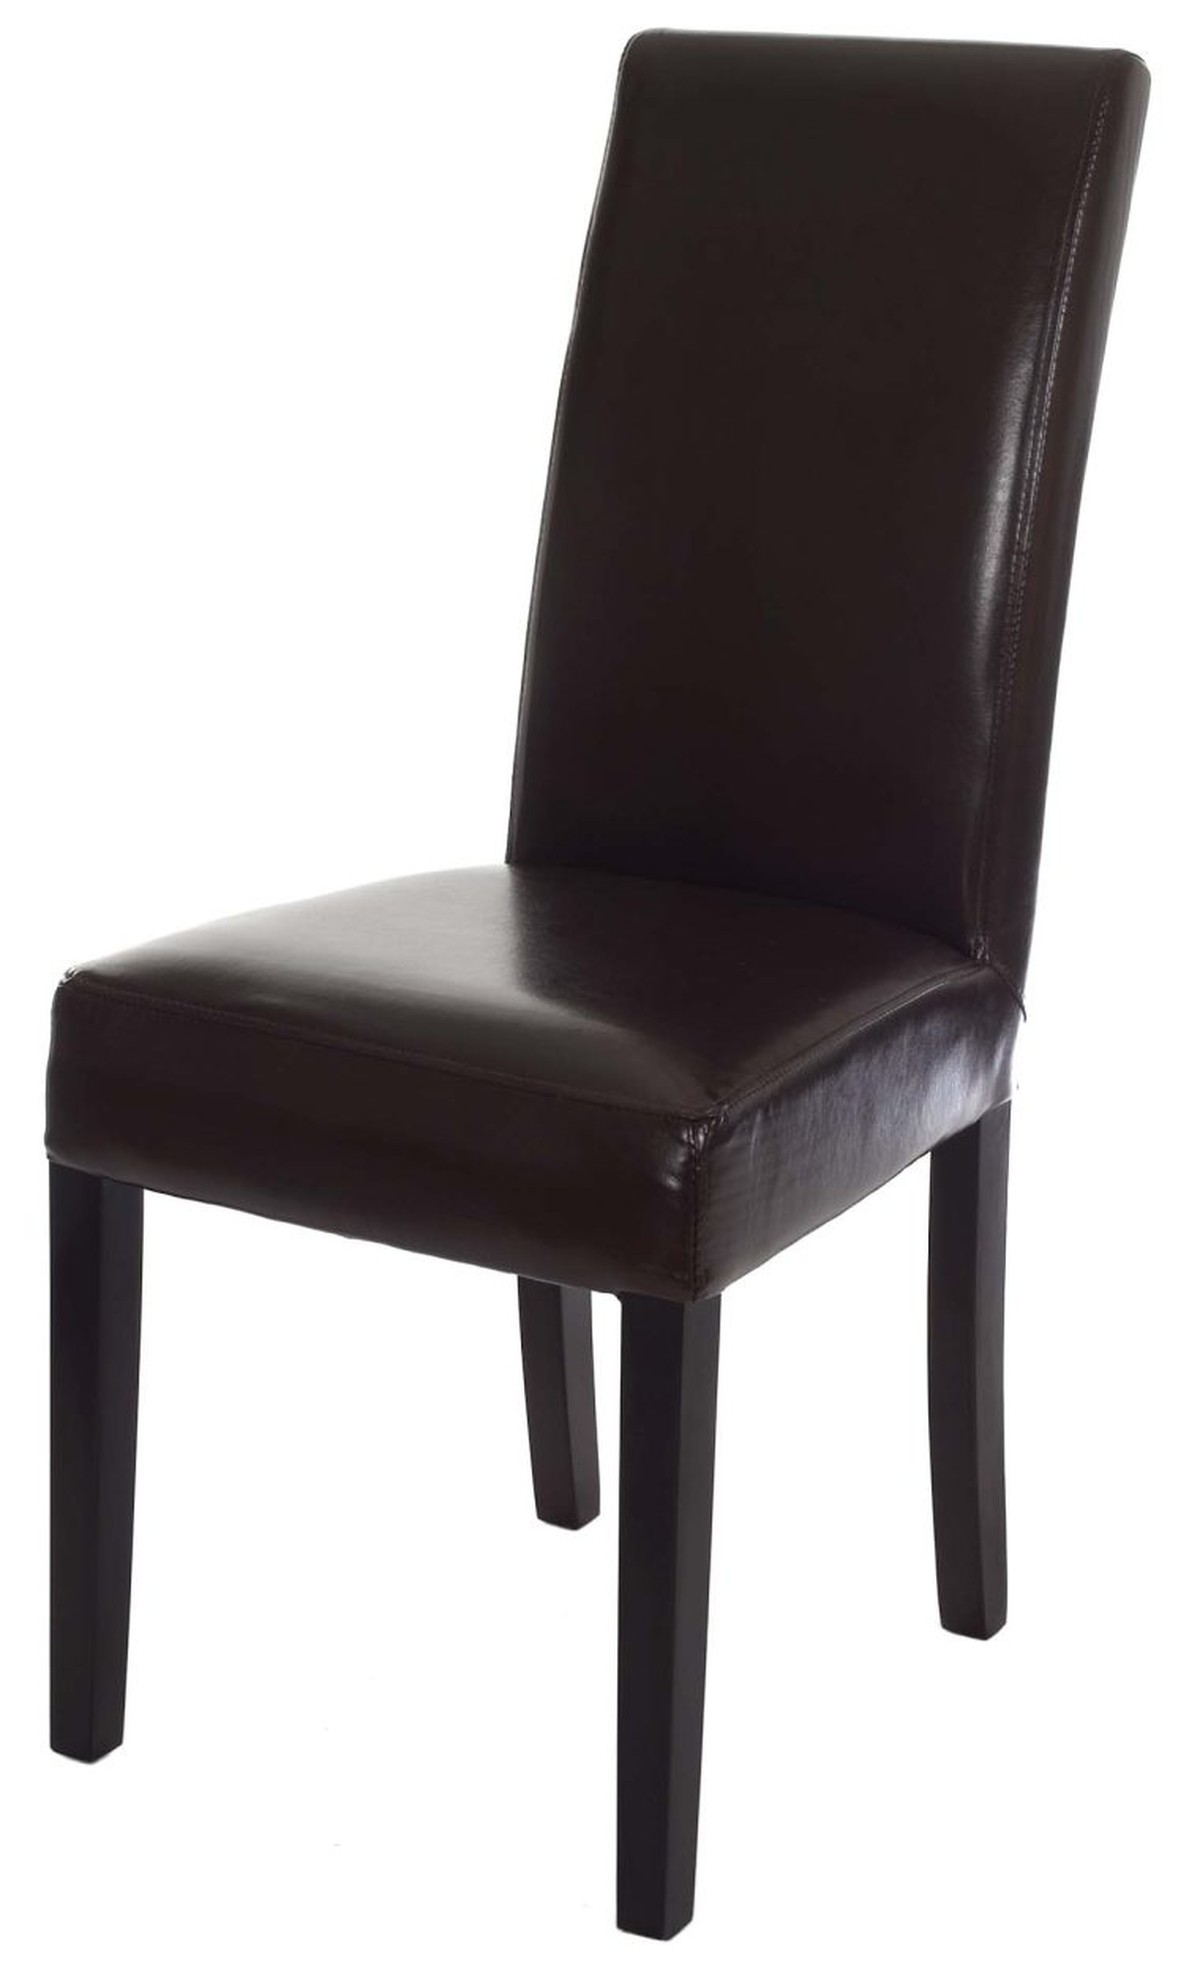 Faux Leather Chair Curlew Secondhand Marquees Fiesta Furniture